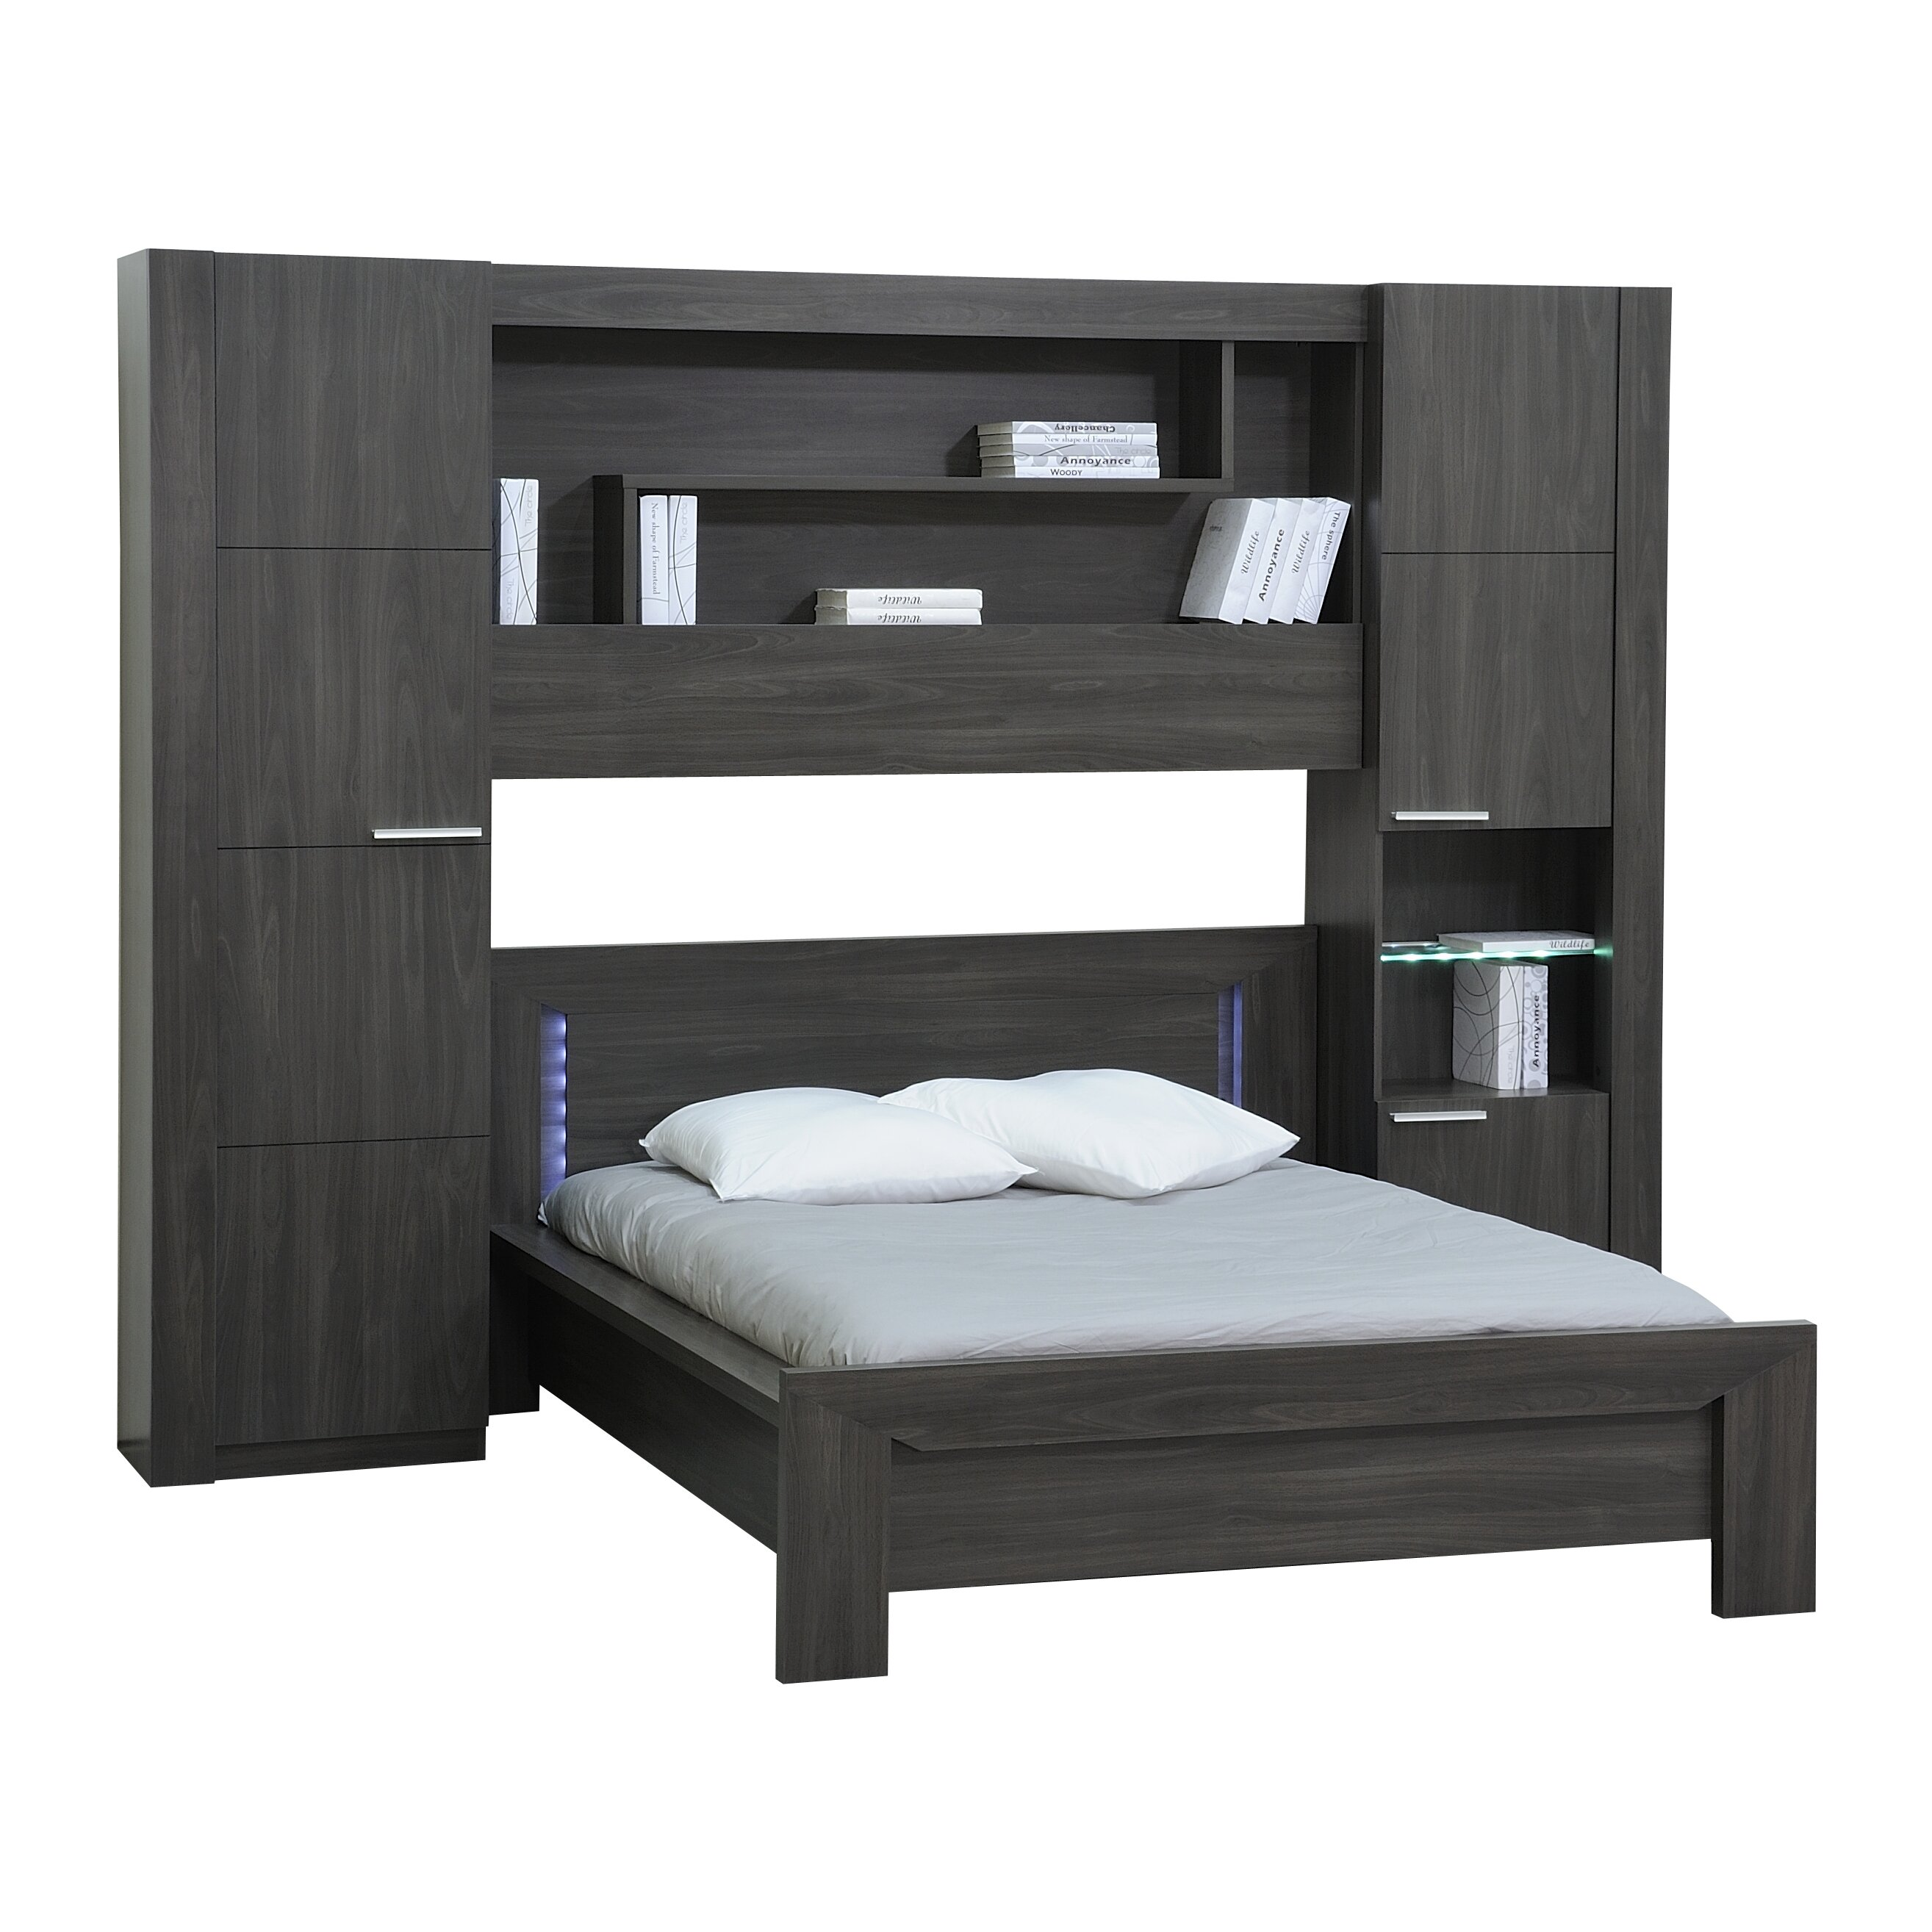 urban designs oceane wood bookcase headboard wayfair uk. Black Bedroom Furniture Sets. Home Design Ideas